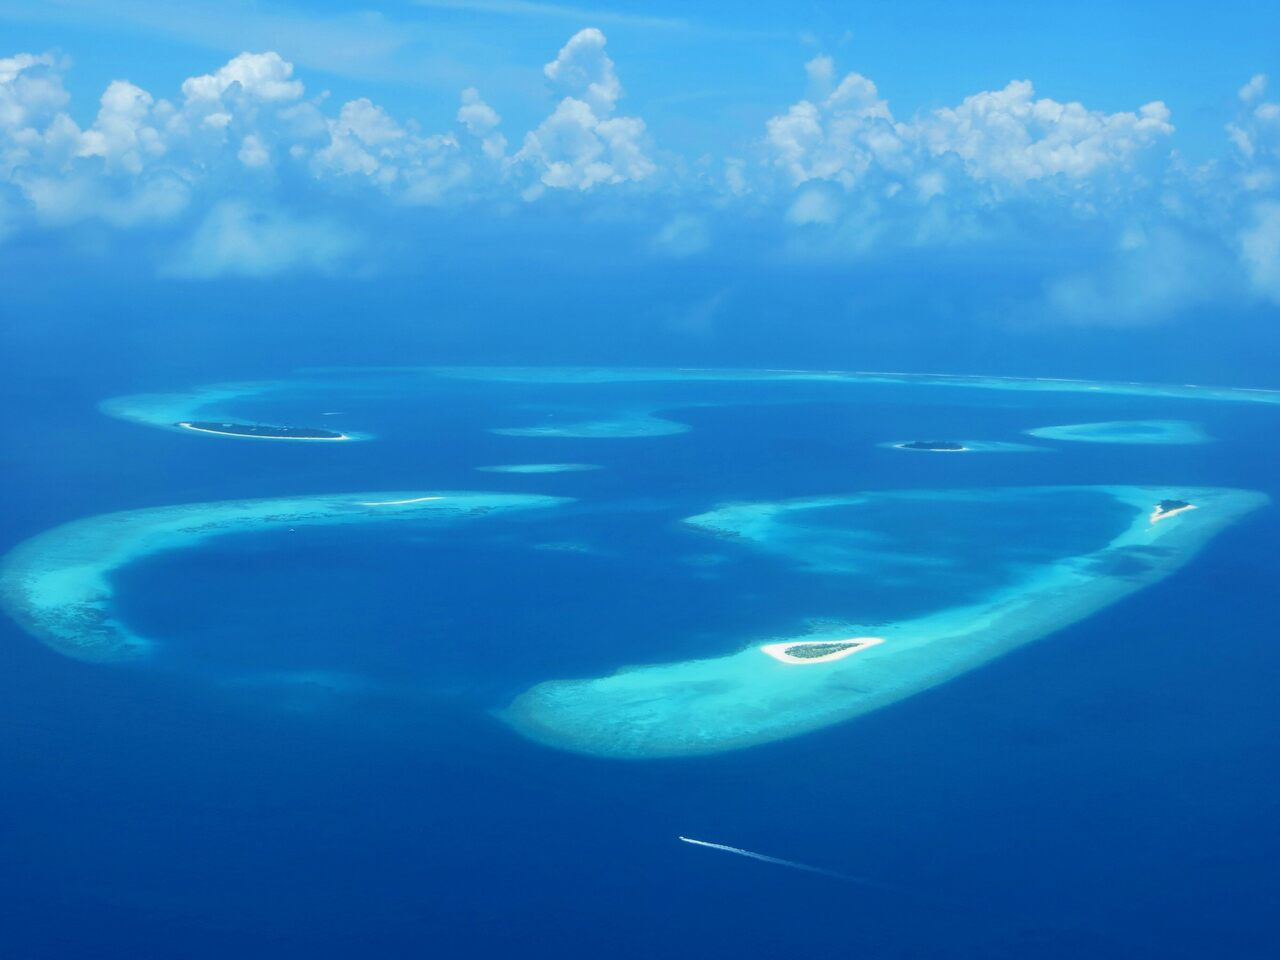 An aerial image of Baa Atoll in the Maldives, a coral island group not far from Kaashidhoo.